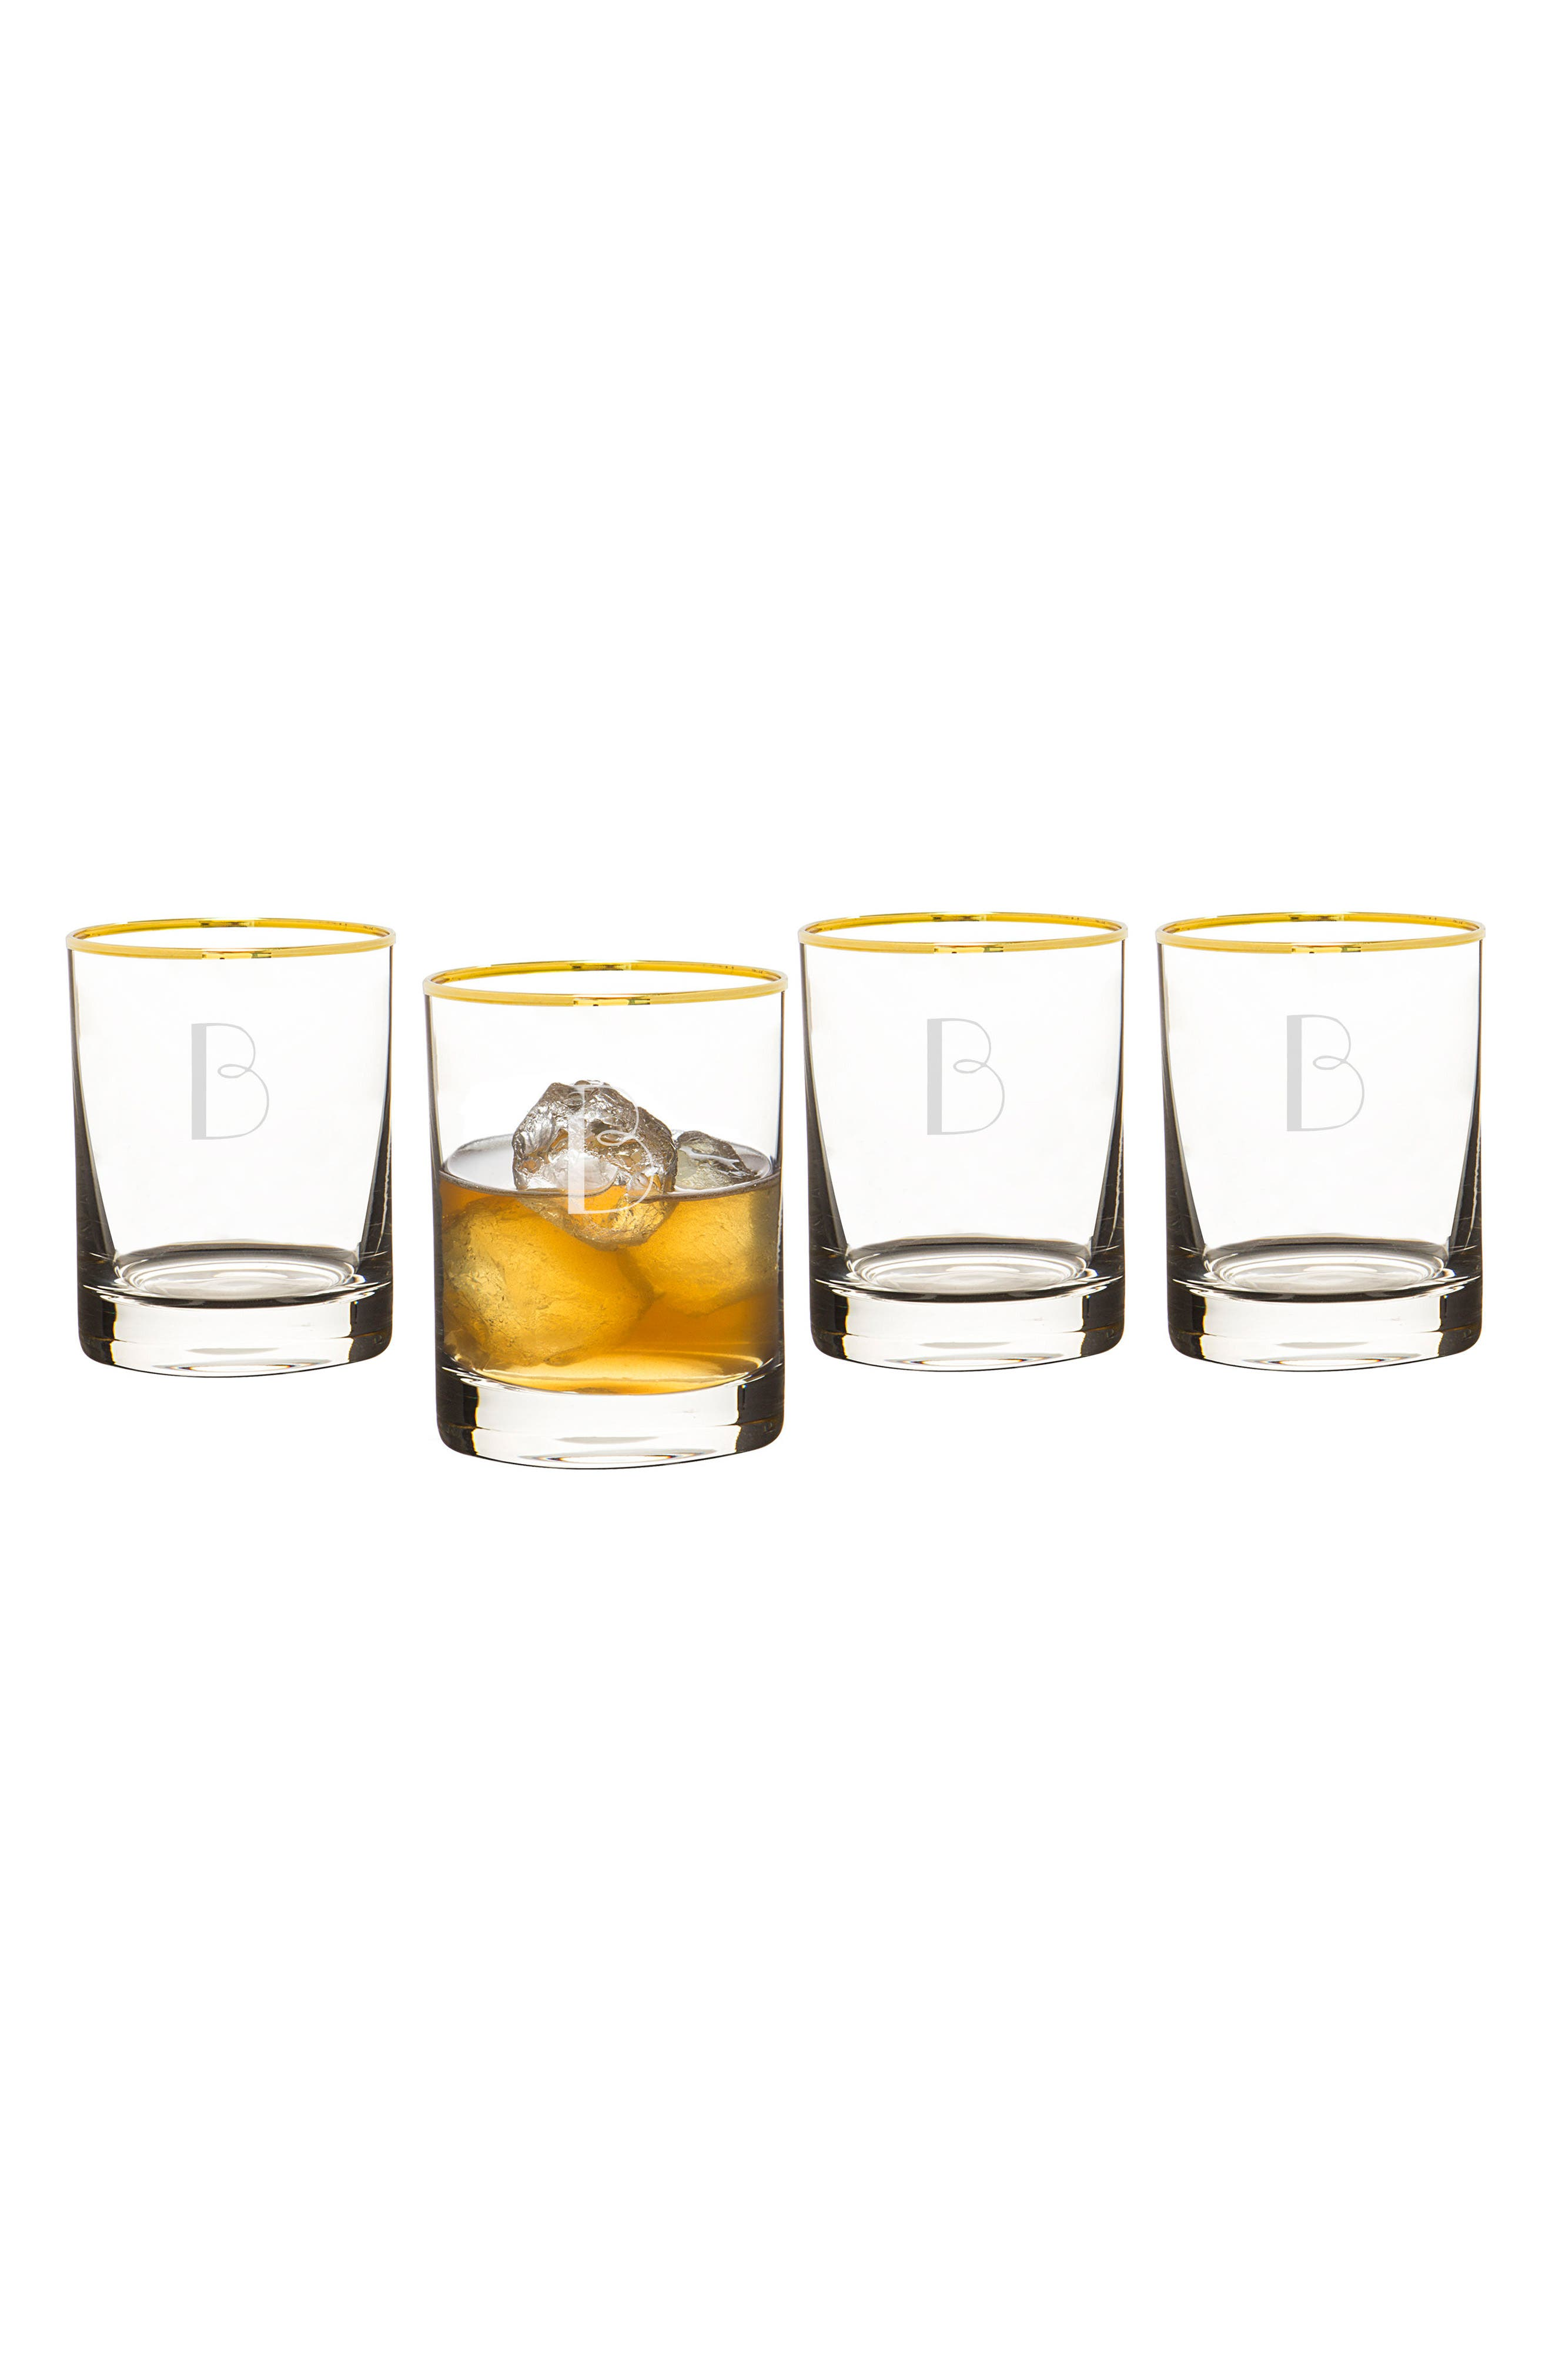 Main Image - Cathy's Concepts Monogram Set of 4 Double Old Fashioned Glasses